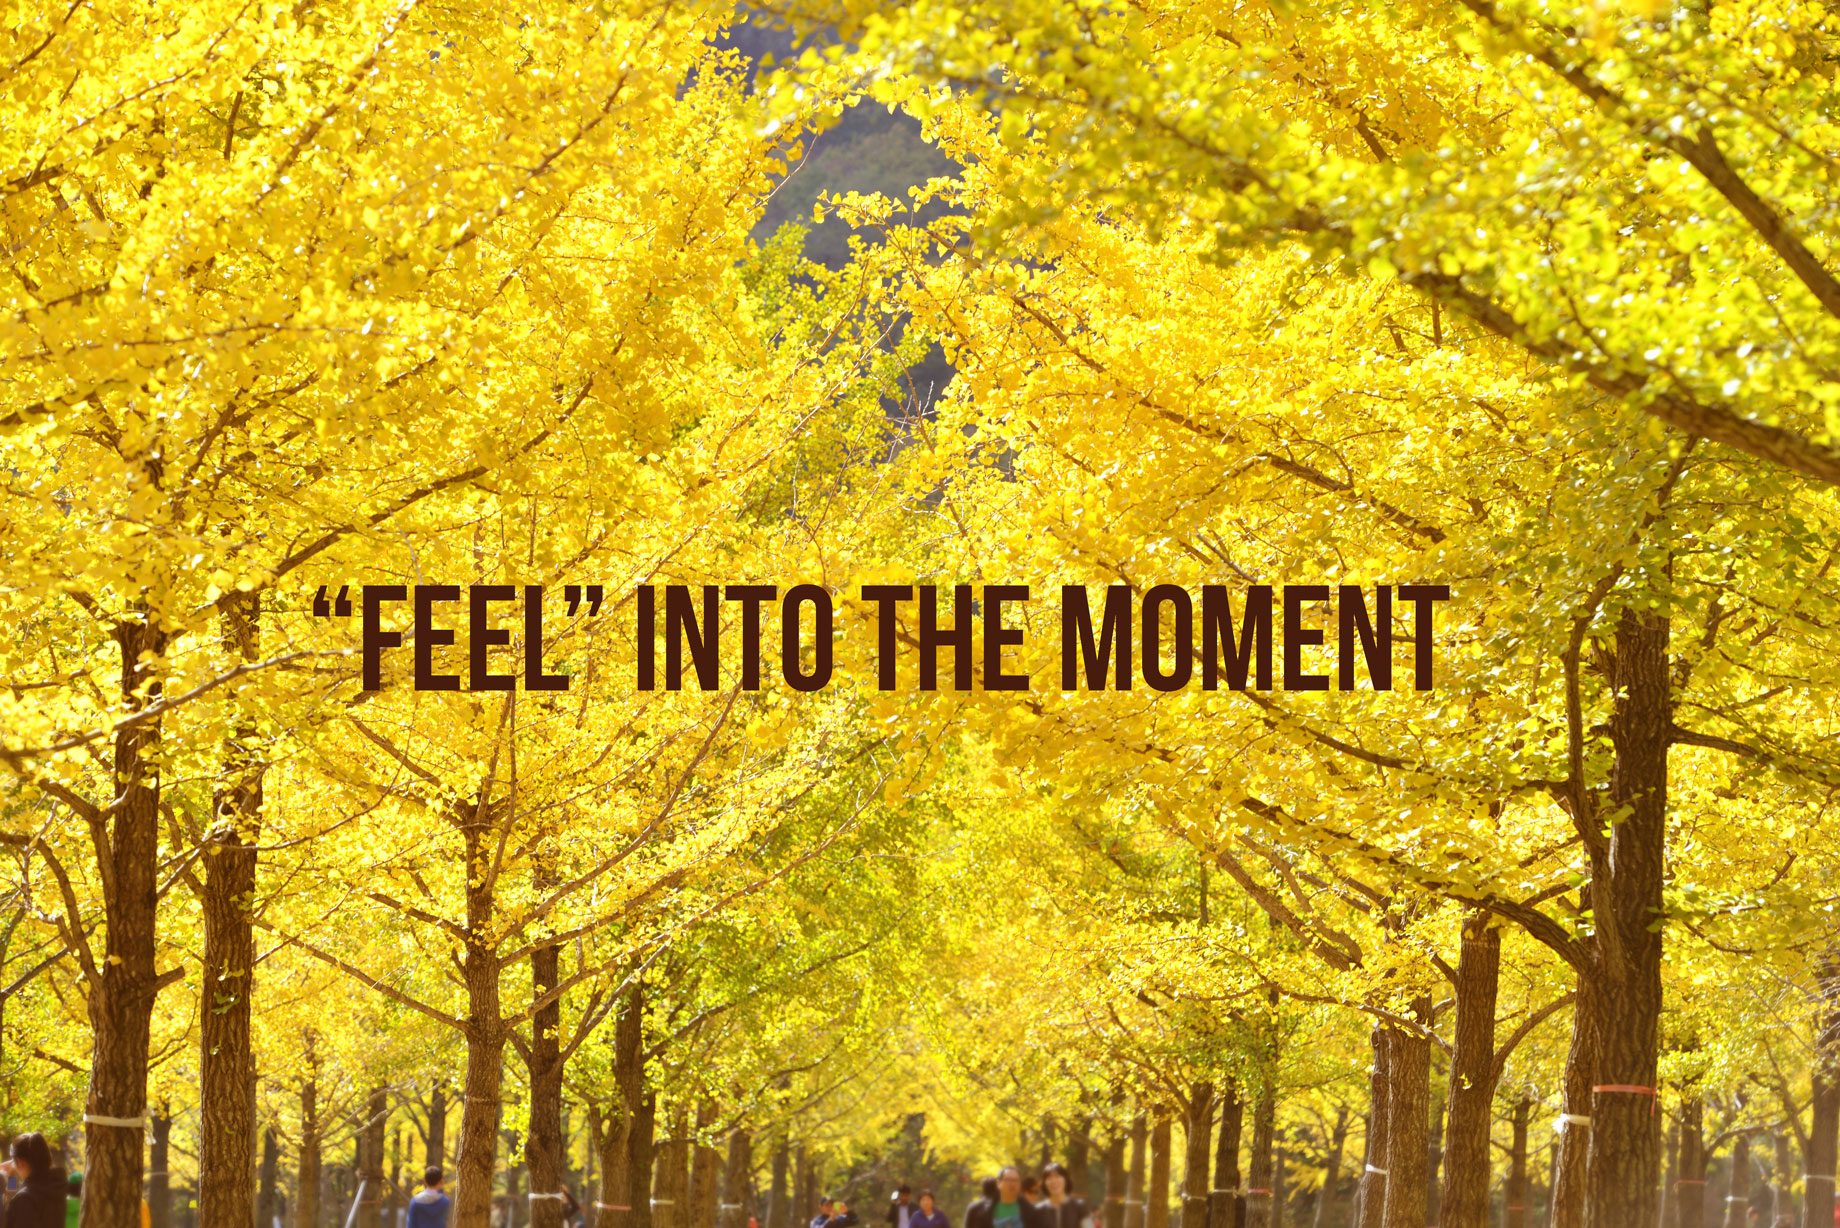 BeSimply...Feel into the Moment {LoveSelf}